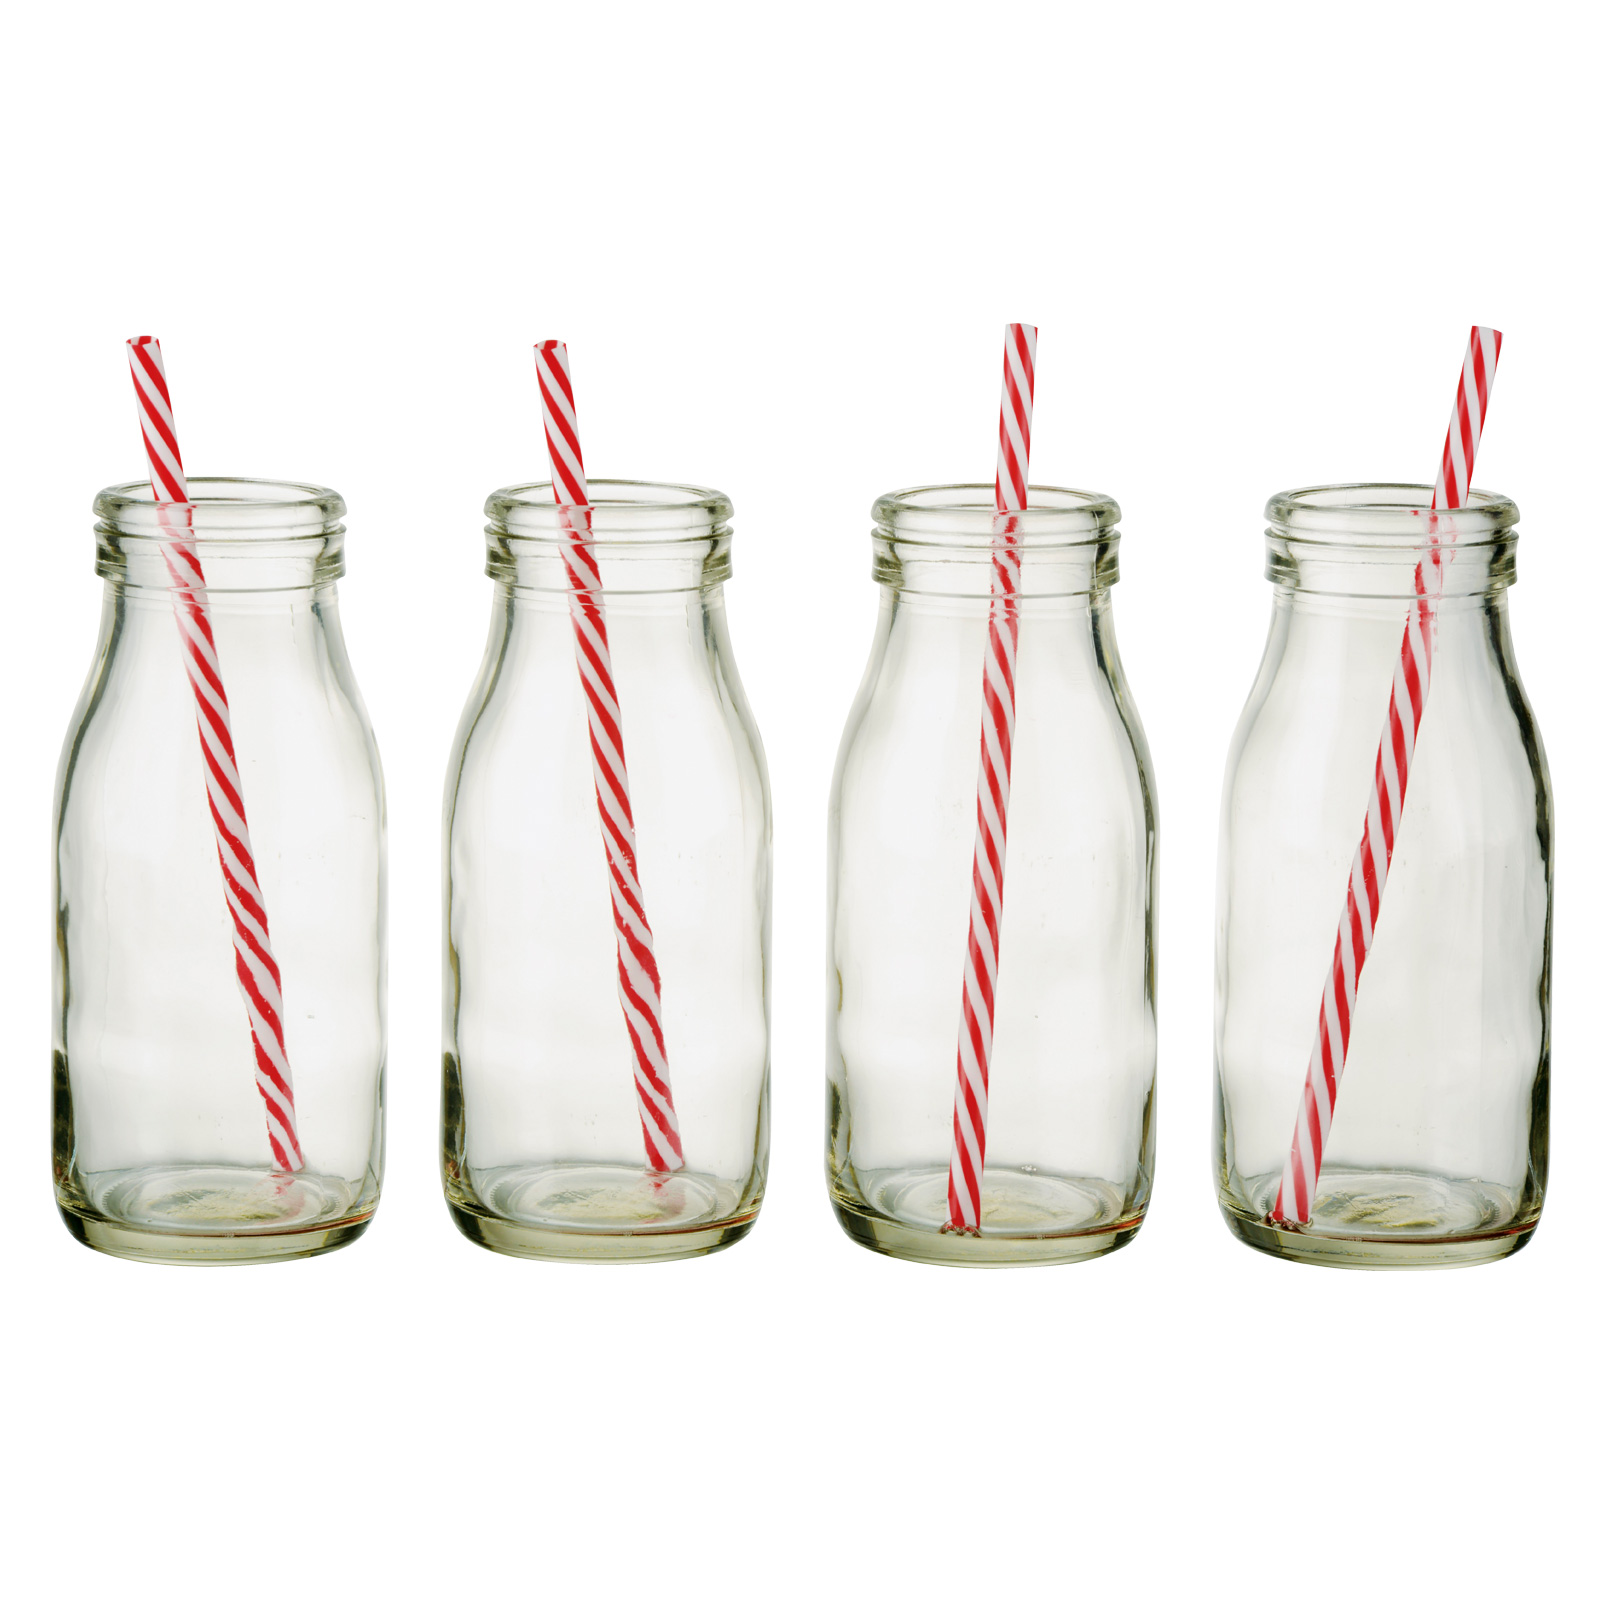 Set of 4 Retro Milk Bottles with Straws by Artland